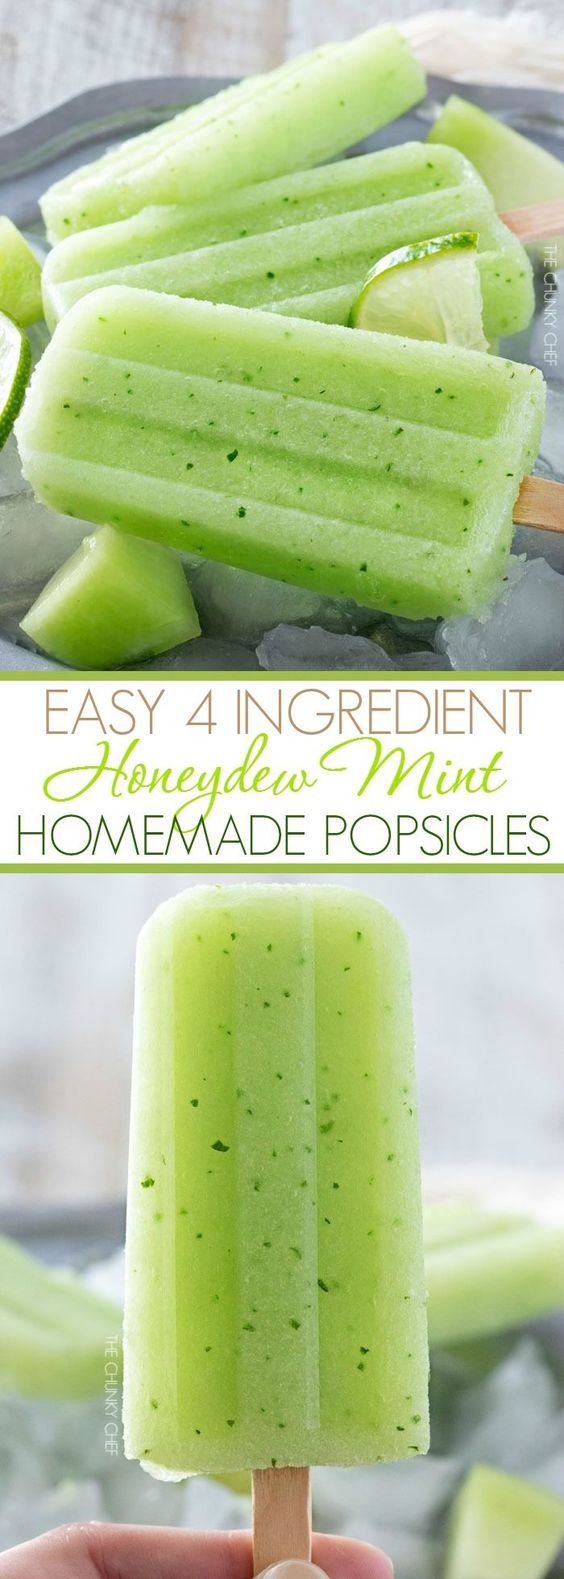 Honeydew Mint Homemade Popsicles | The refreshing taste of sweet honeydew melon…